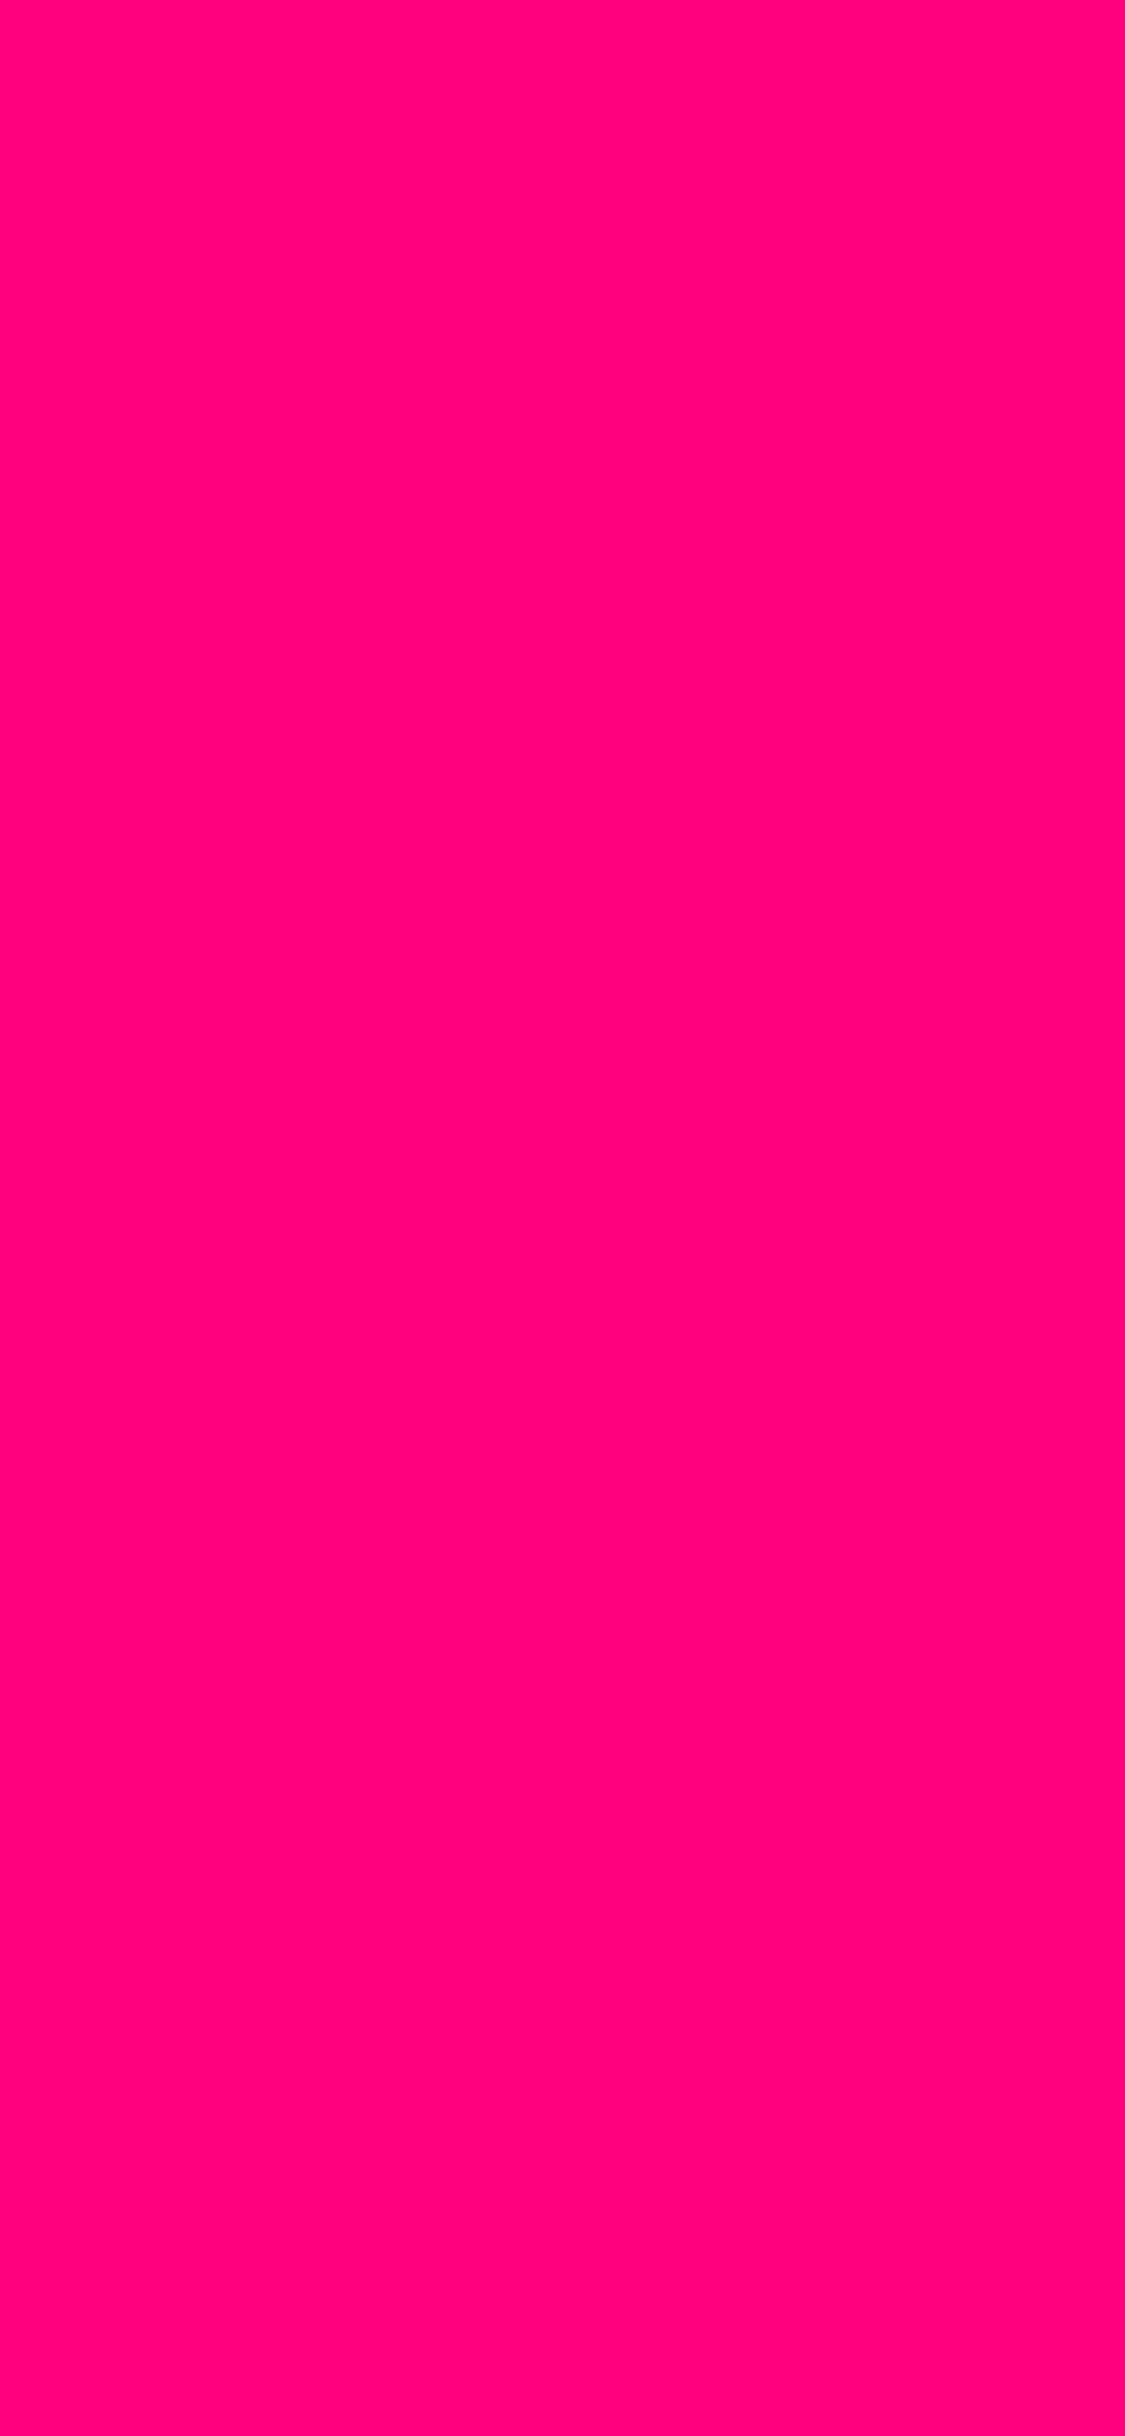 1125x2436 Bright Pink Solid Color Background